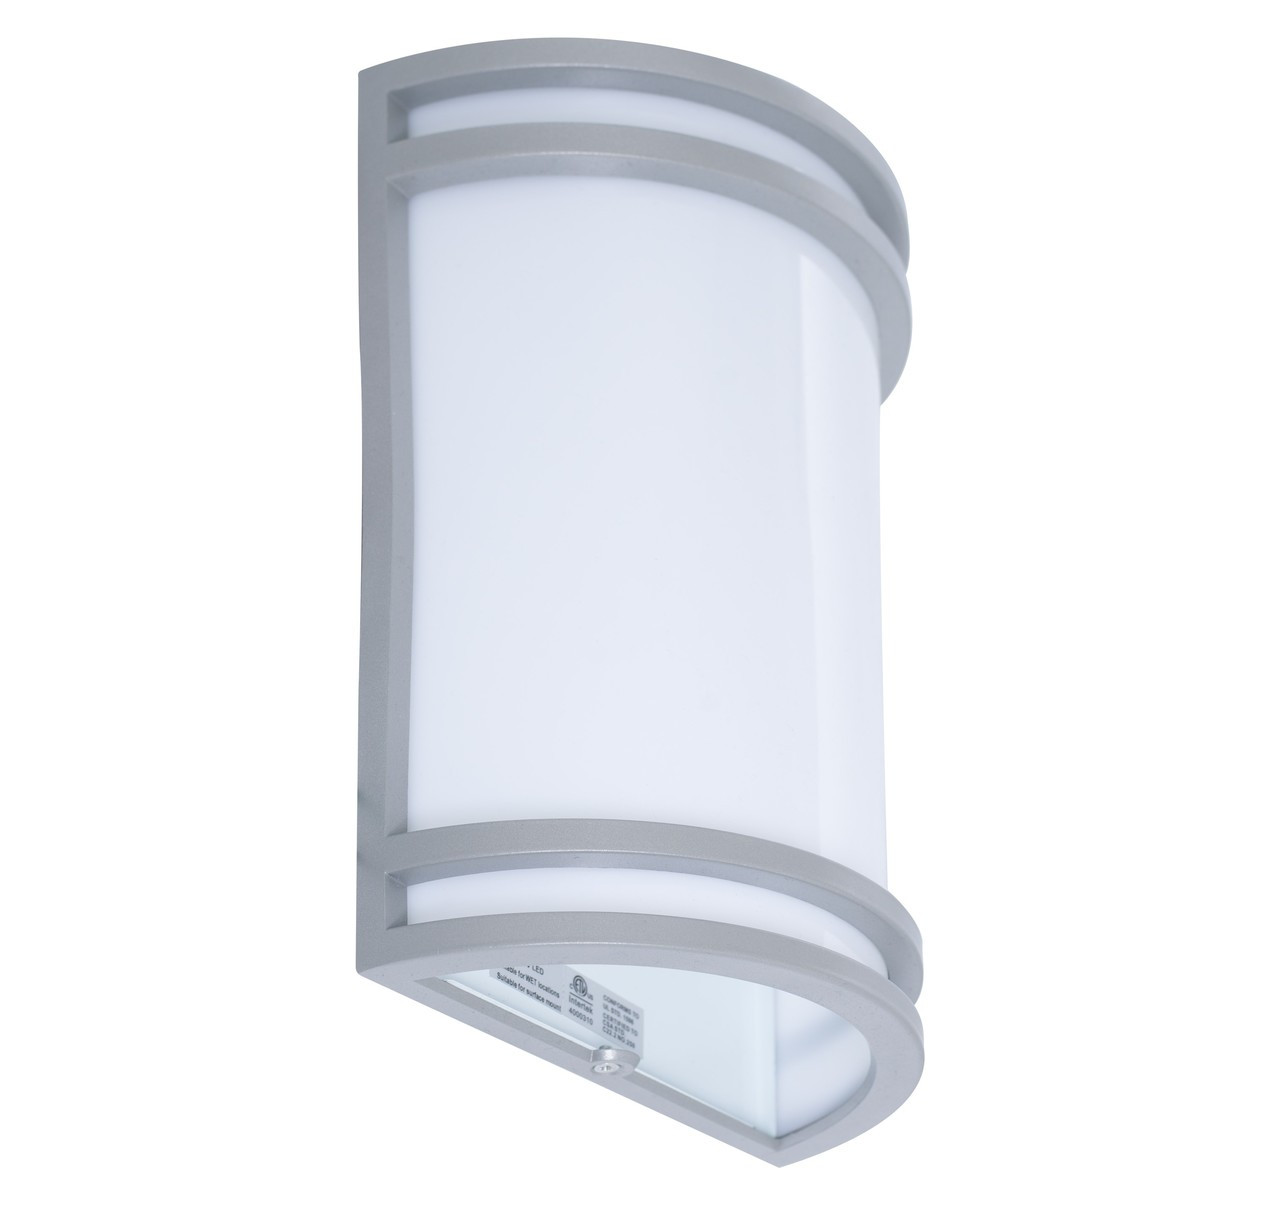 Led Decorative Wall Sconce 12 Watt 1 200 Lumens 4000k Cool White